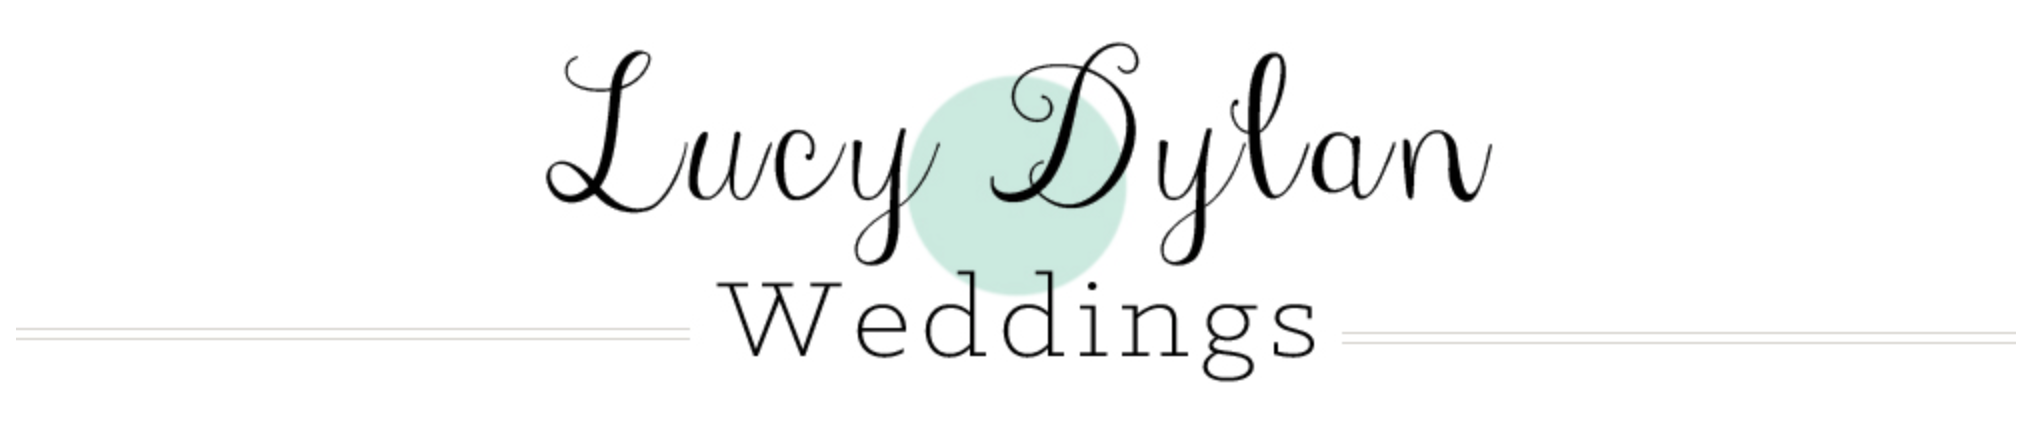 Lucy Dylan weddings